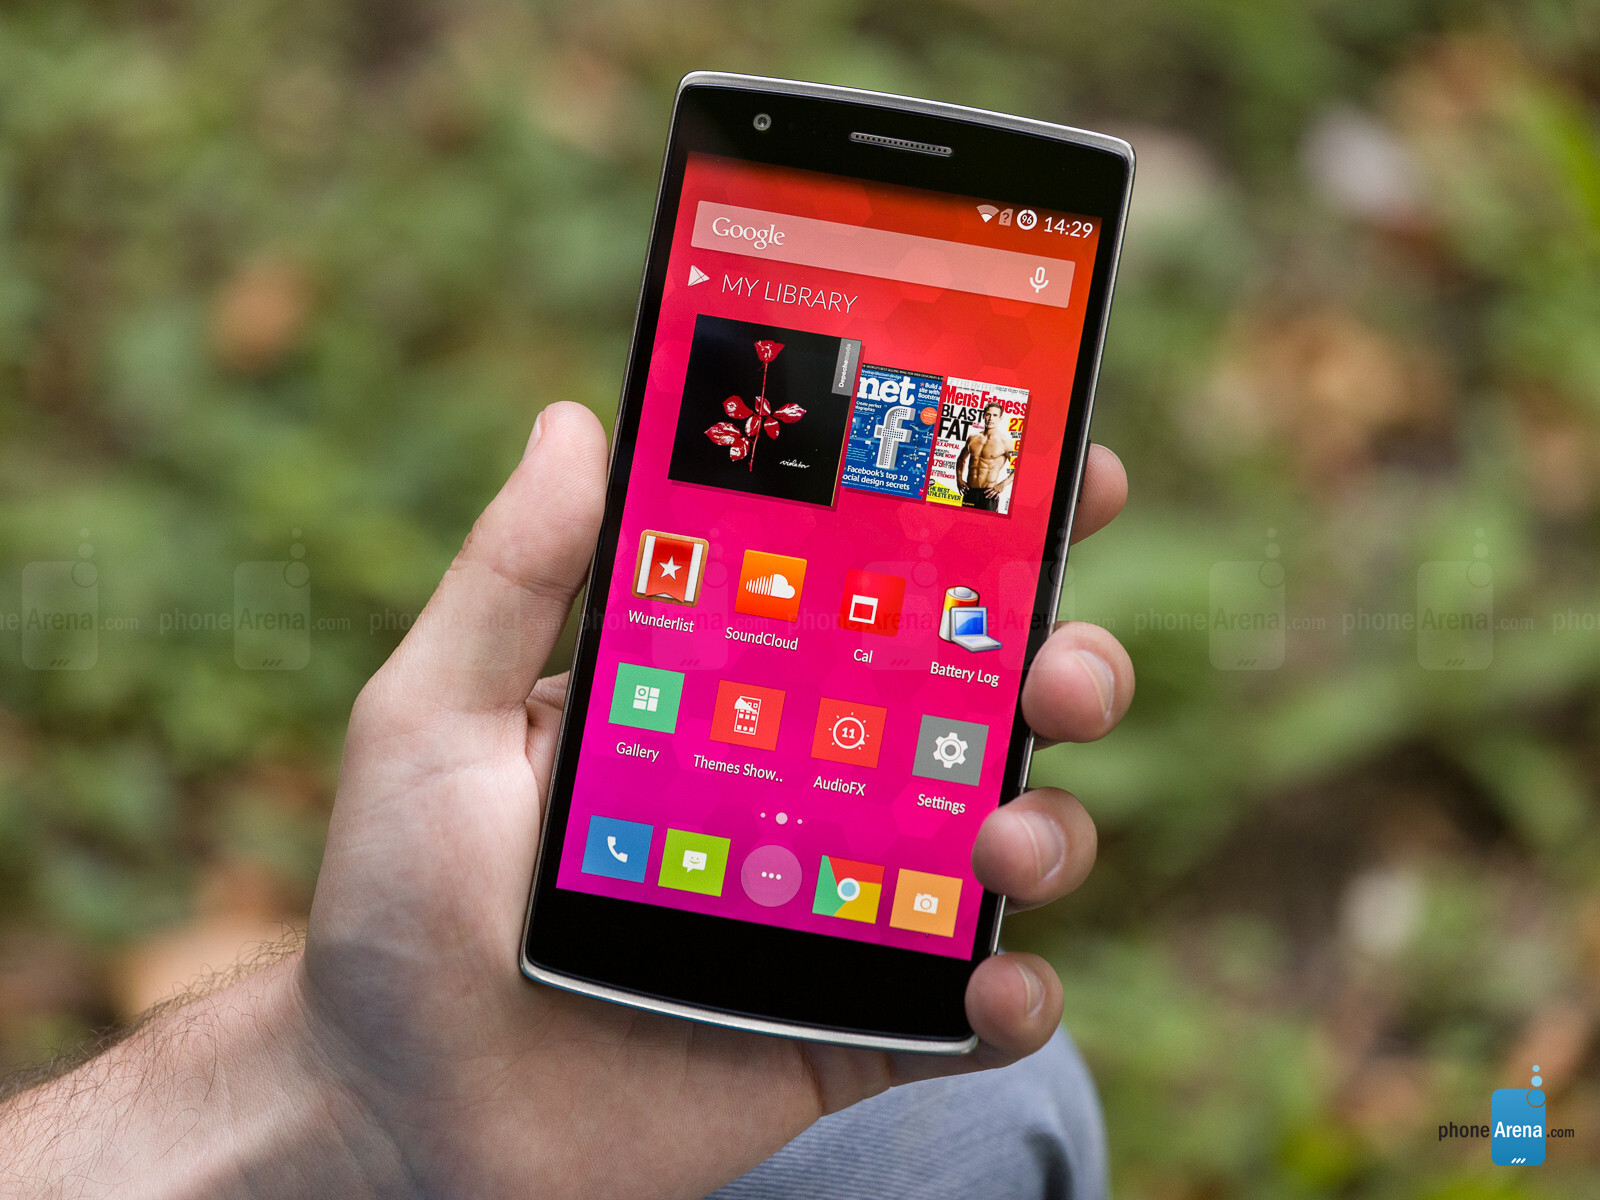 OxygenOS 2.1.4 is now available for the OnePlus One Oneplus